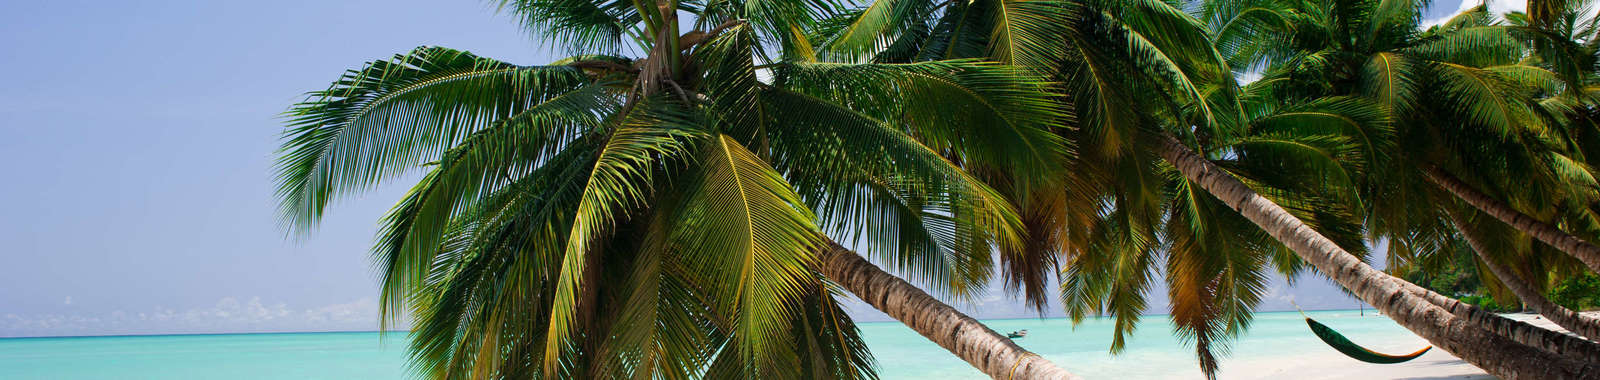 Kerala and the Andaman Islands is the perfect combination for a relaxing holiday